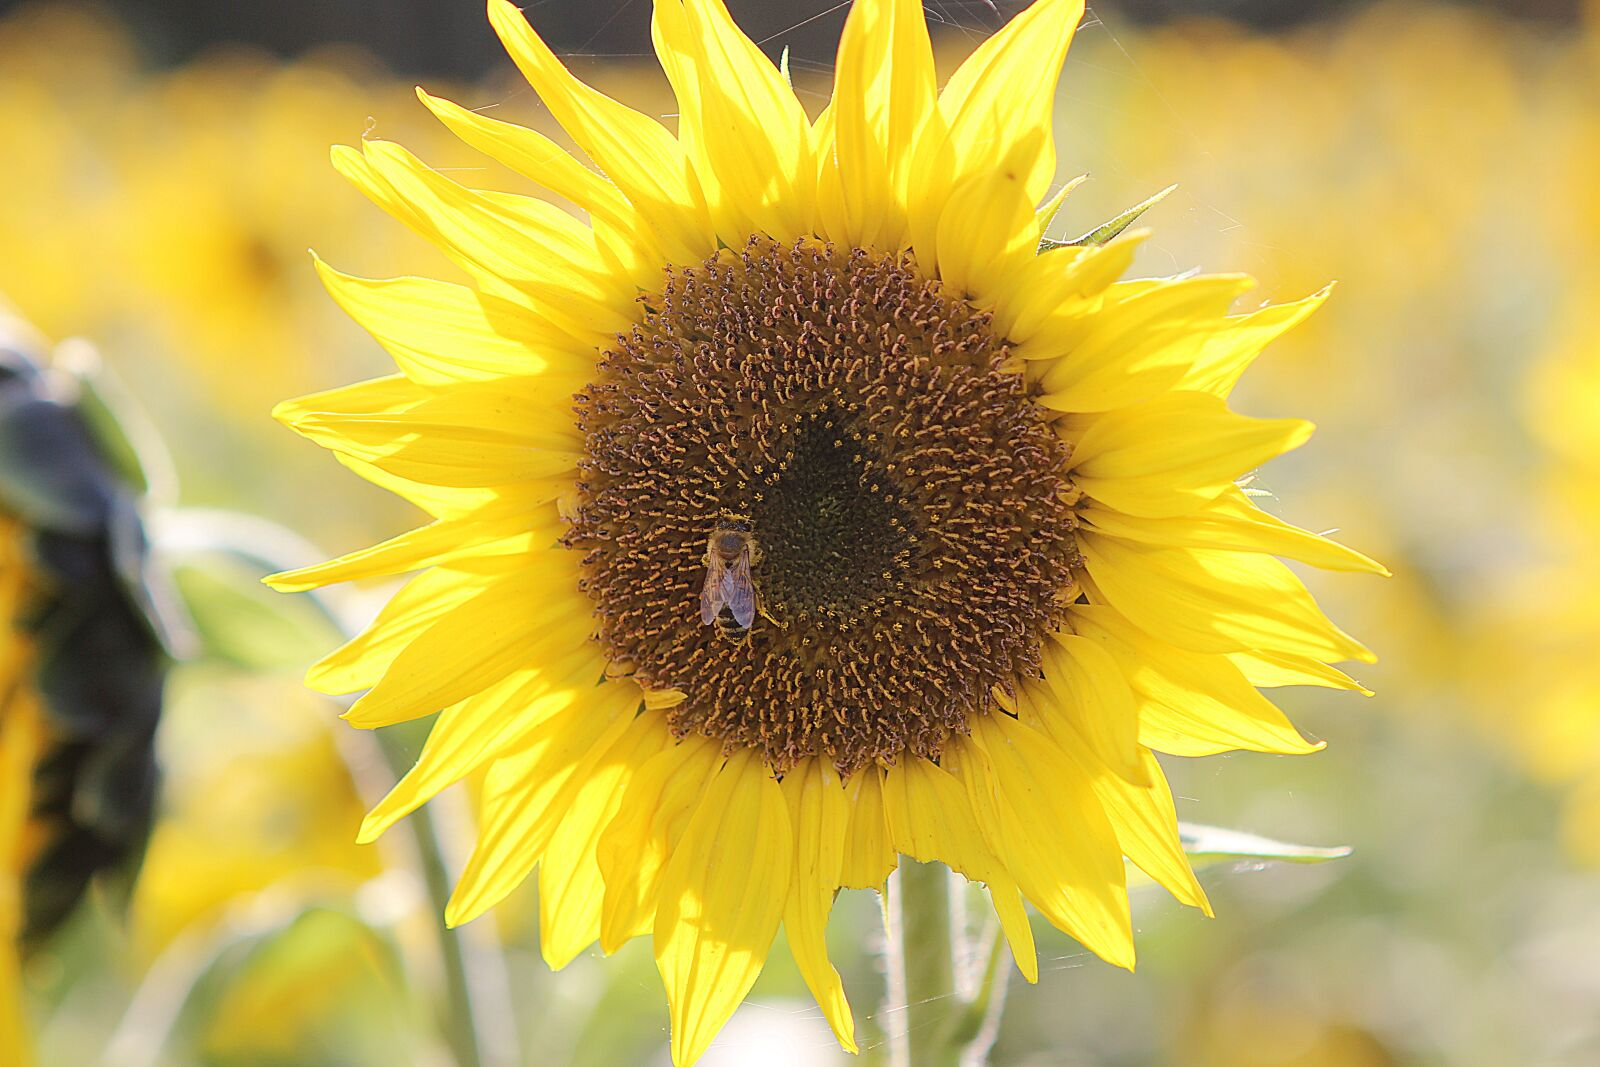 """Canon EOS 600D (Rebel EOS T3i / EOS Kiss X5) sample photo. """"Sunflower, bee, yellow"""" photography"""